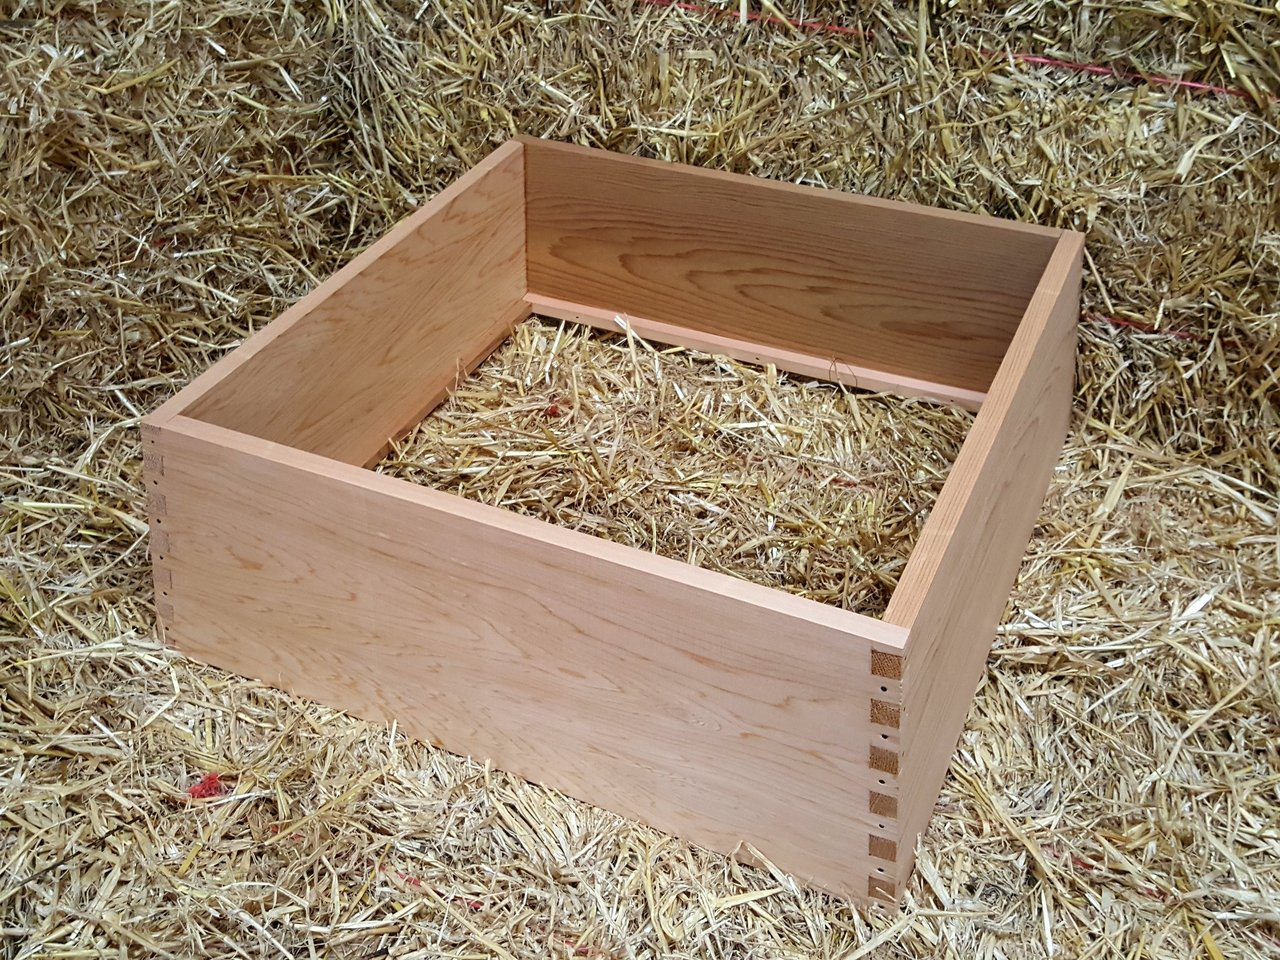 Wbc Hive Cedar With 14x12 Brood Box Poultry For Sale